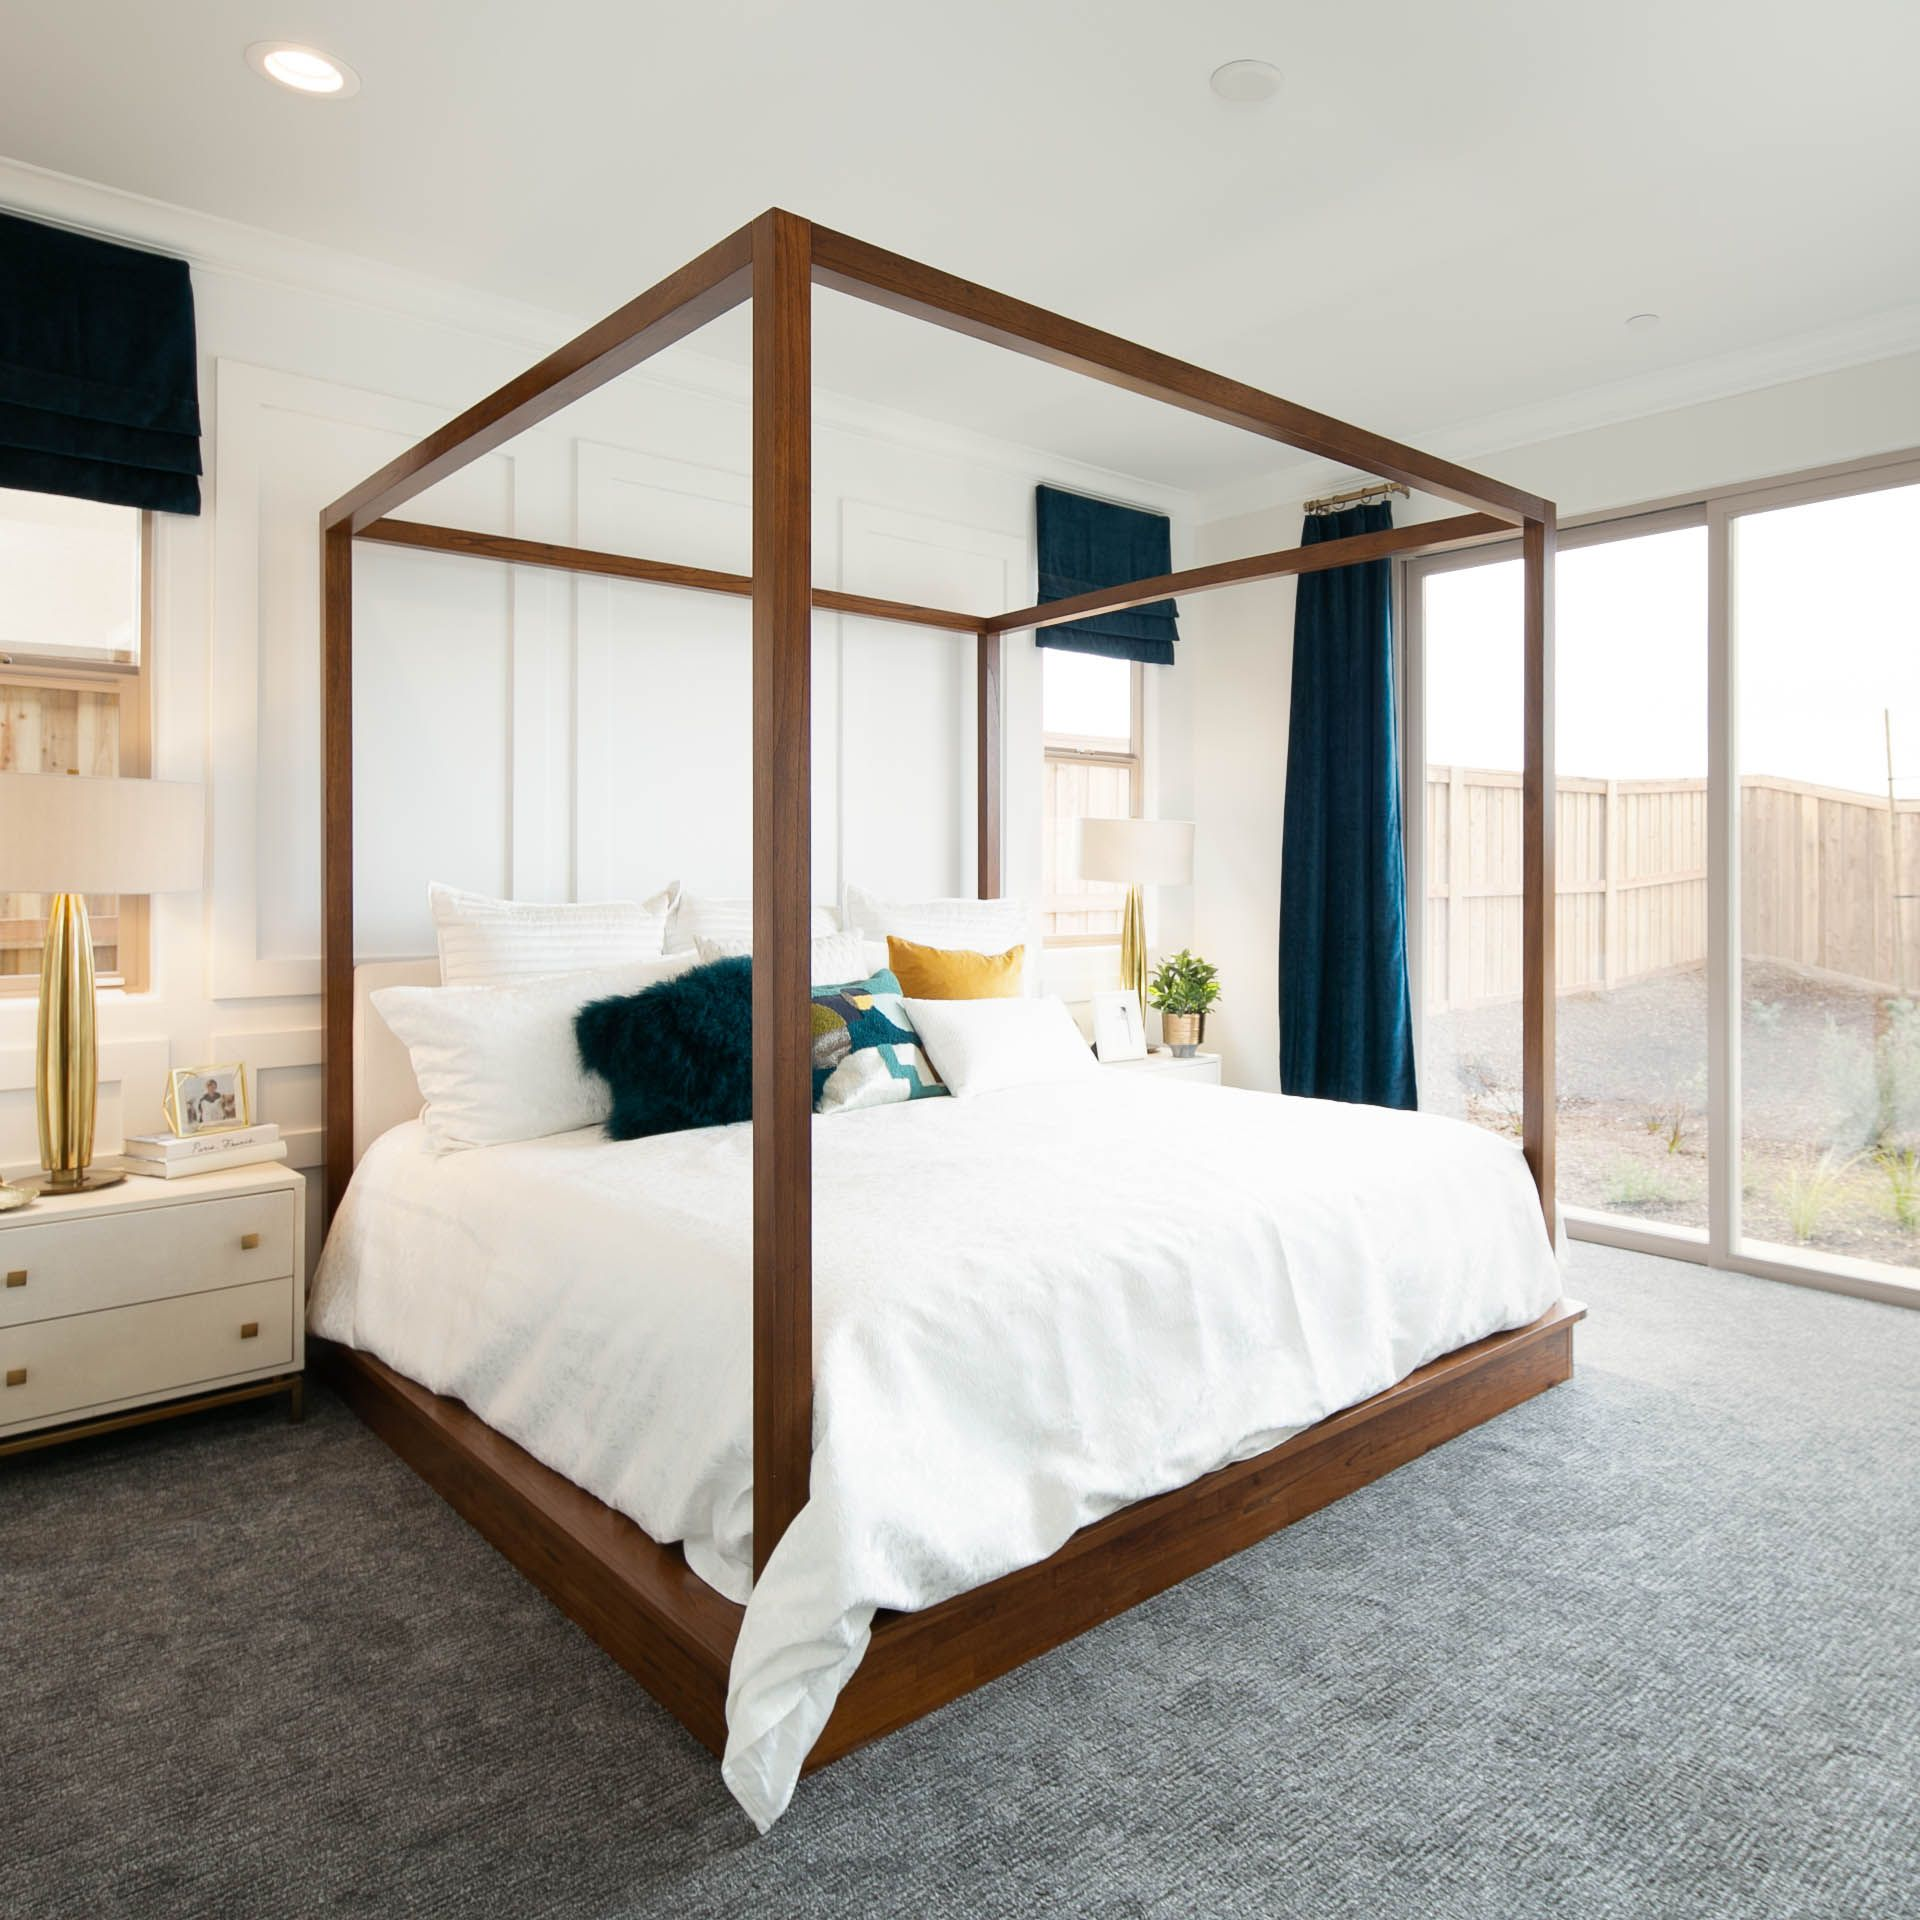 Bedroom featured in the Residence One By Williams Homes in San Luis Obispo, CA